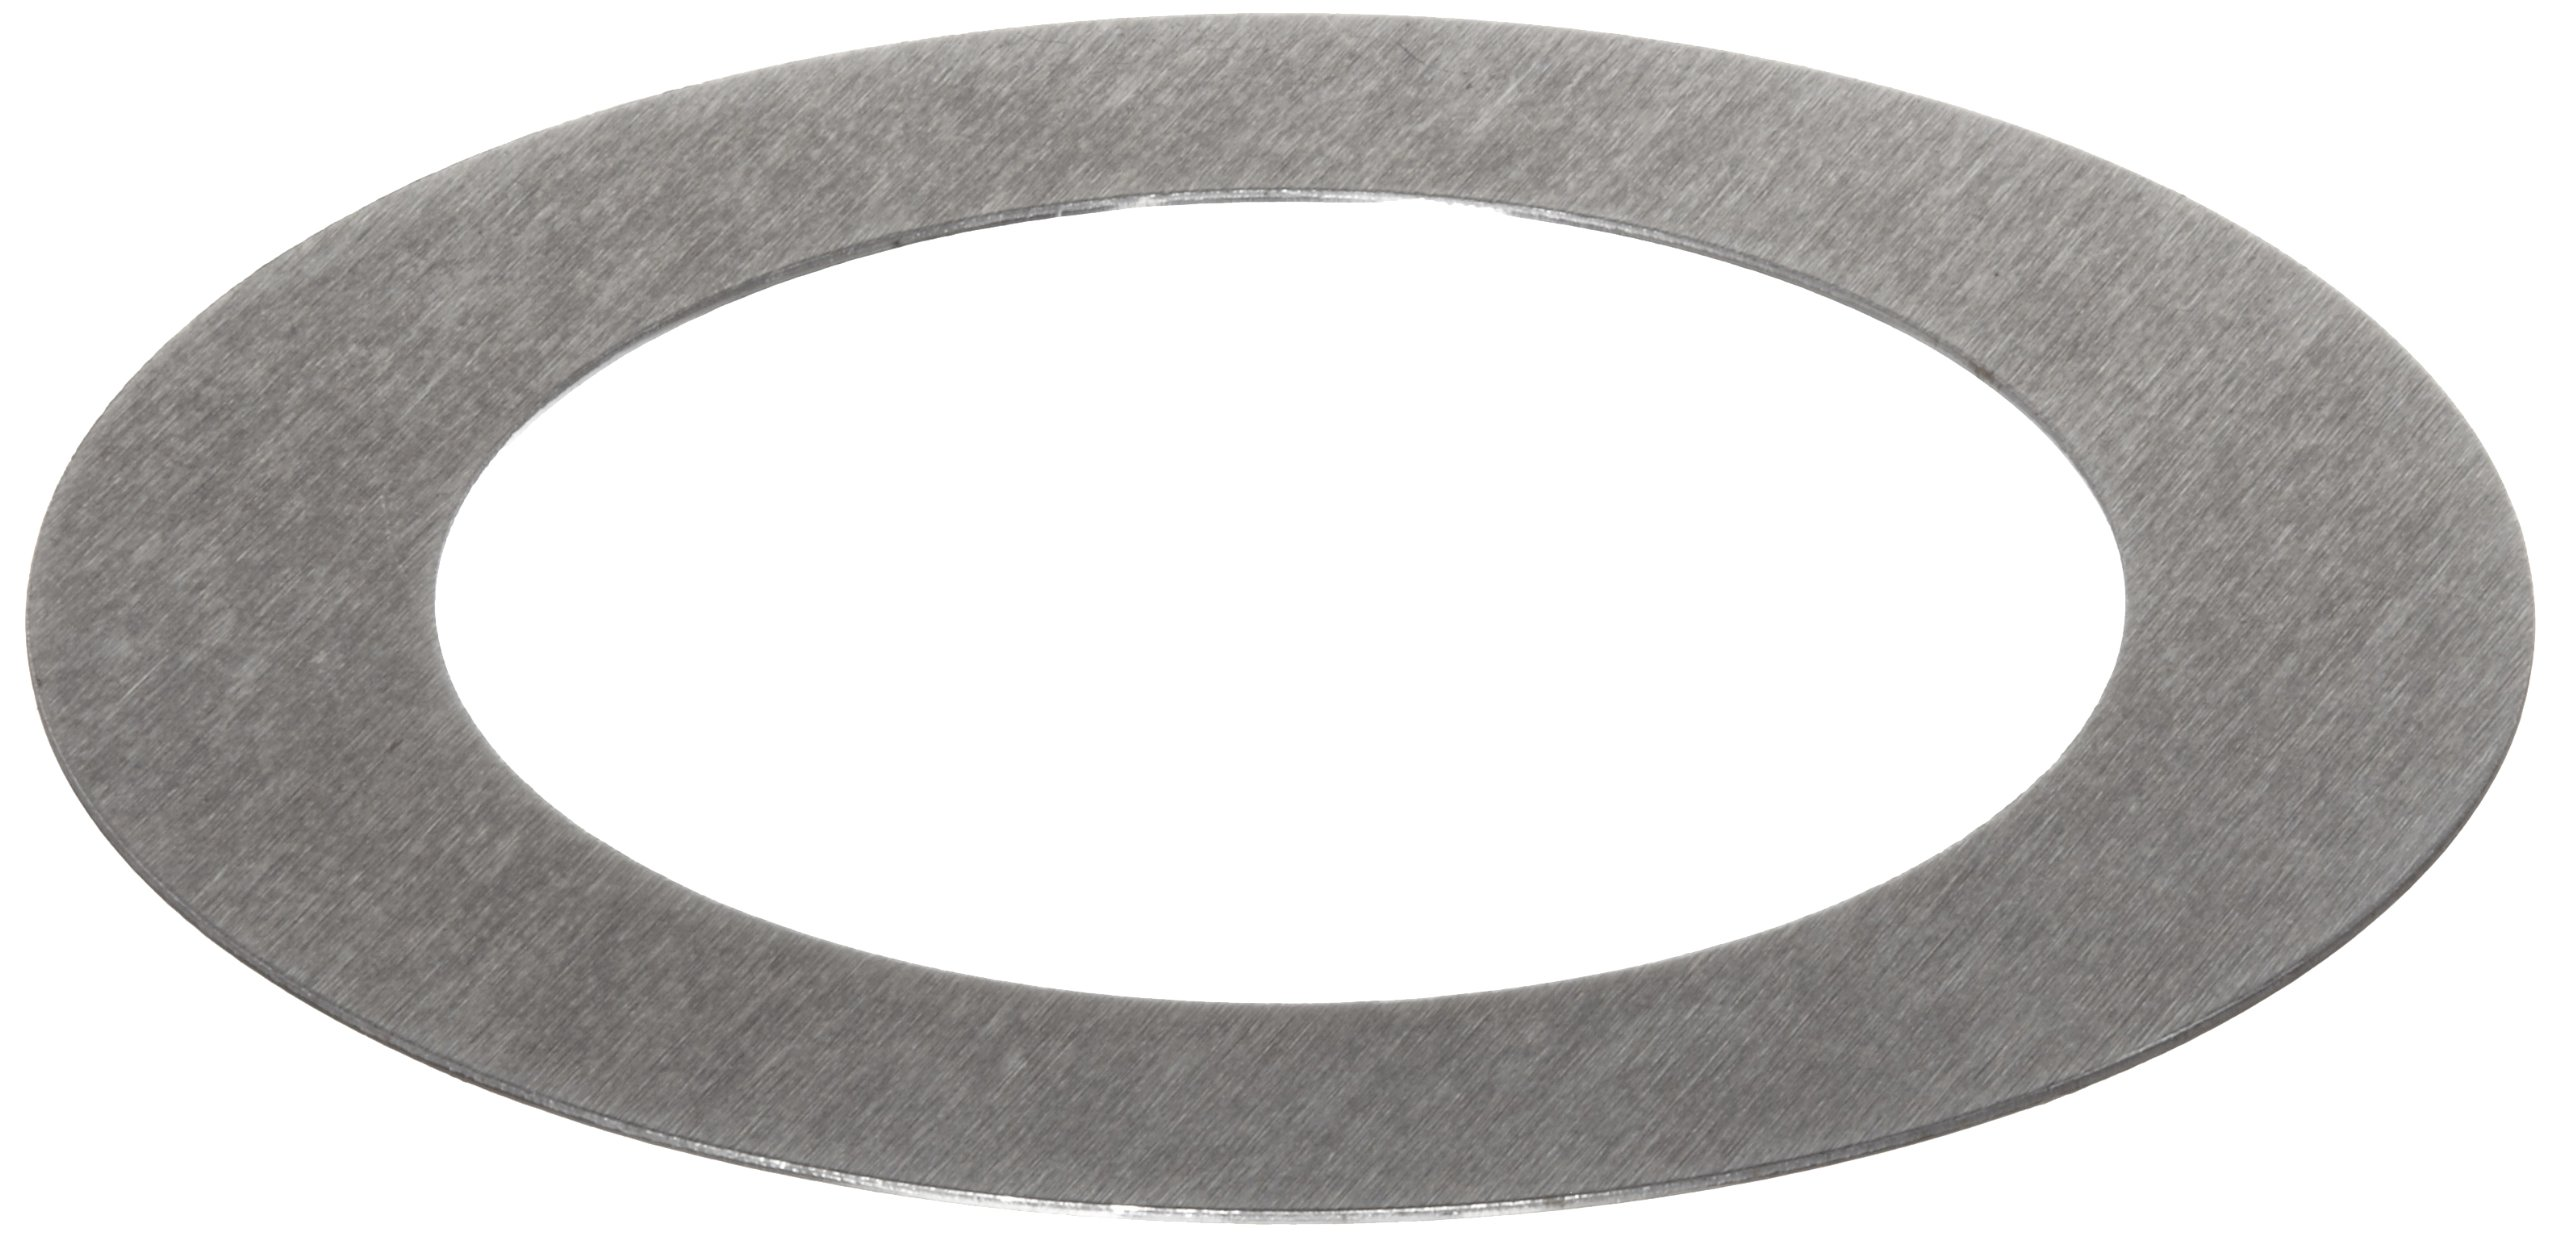 C1008/C1010 Steel Round Shim, Unpolished (Mill) Finish, #1-5 Temper, ASTM A1008/ASTM A1011, 0.125'' Thickness, 1-1/4'' ID, 1-3/4'' OD (Pack of 10)